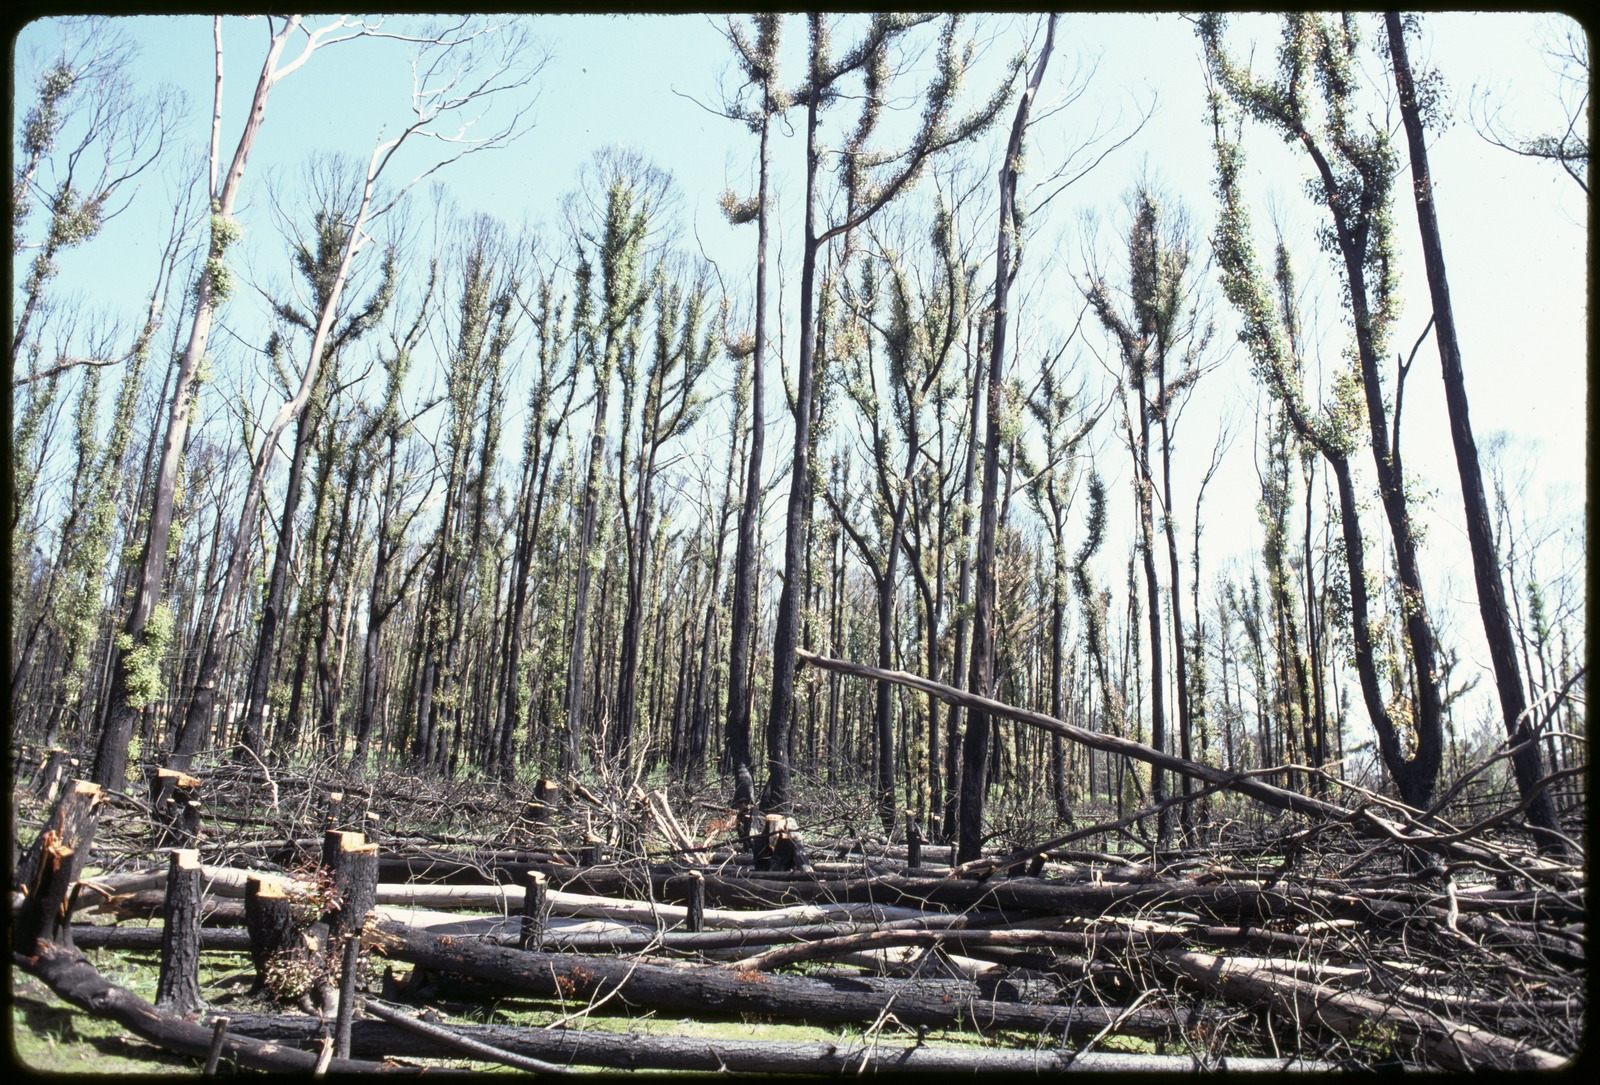 Regrowth in forest after a bushfire. Rennie Ellis